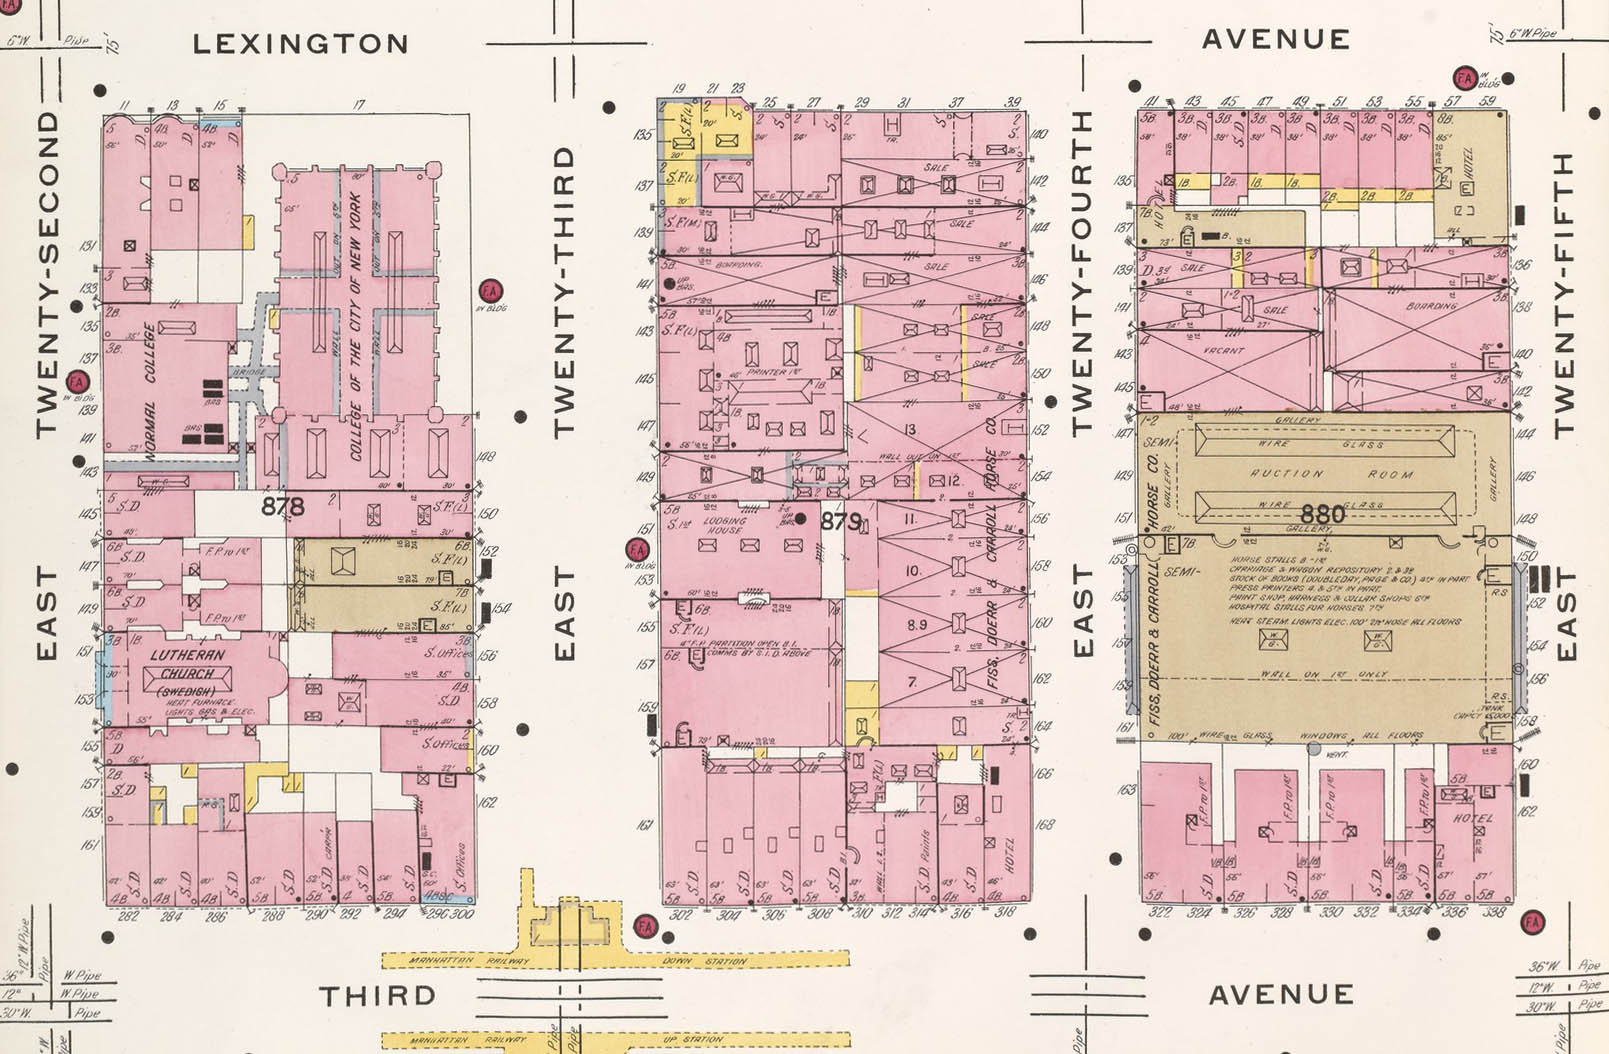 baruch college campus map Baruch College Then And Now 155 East 24th Street Baruch College baruch college campus map